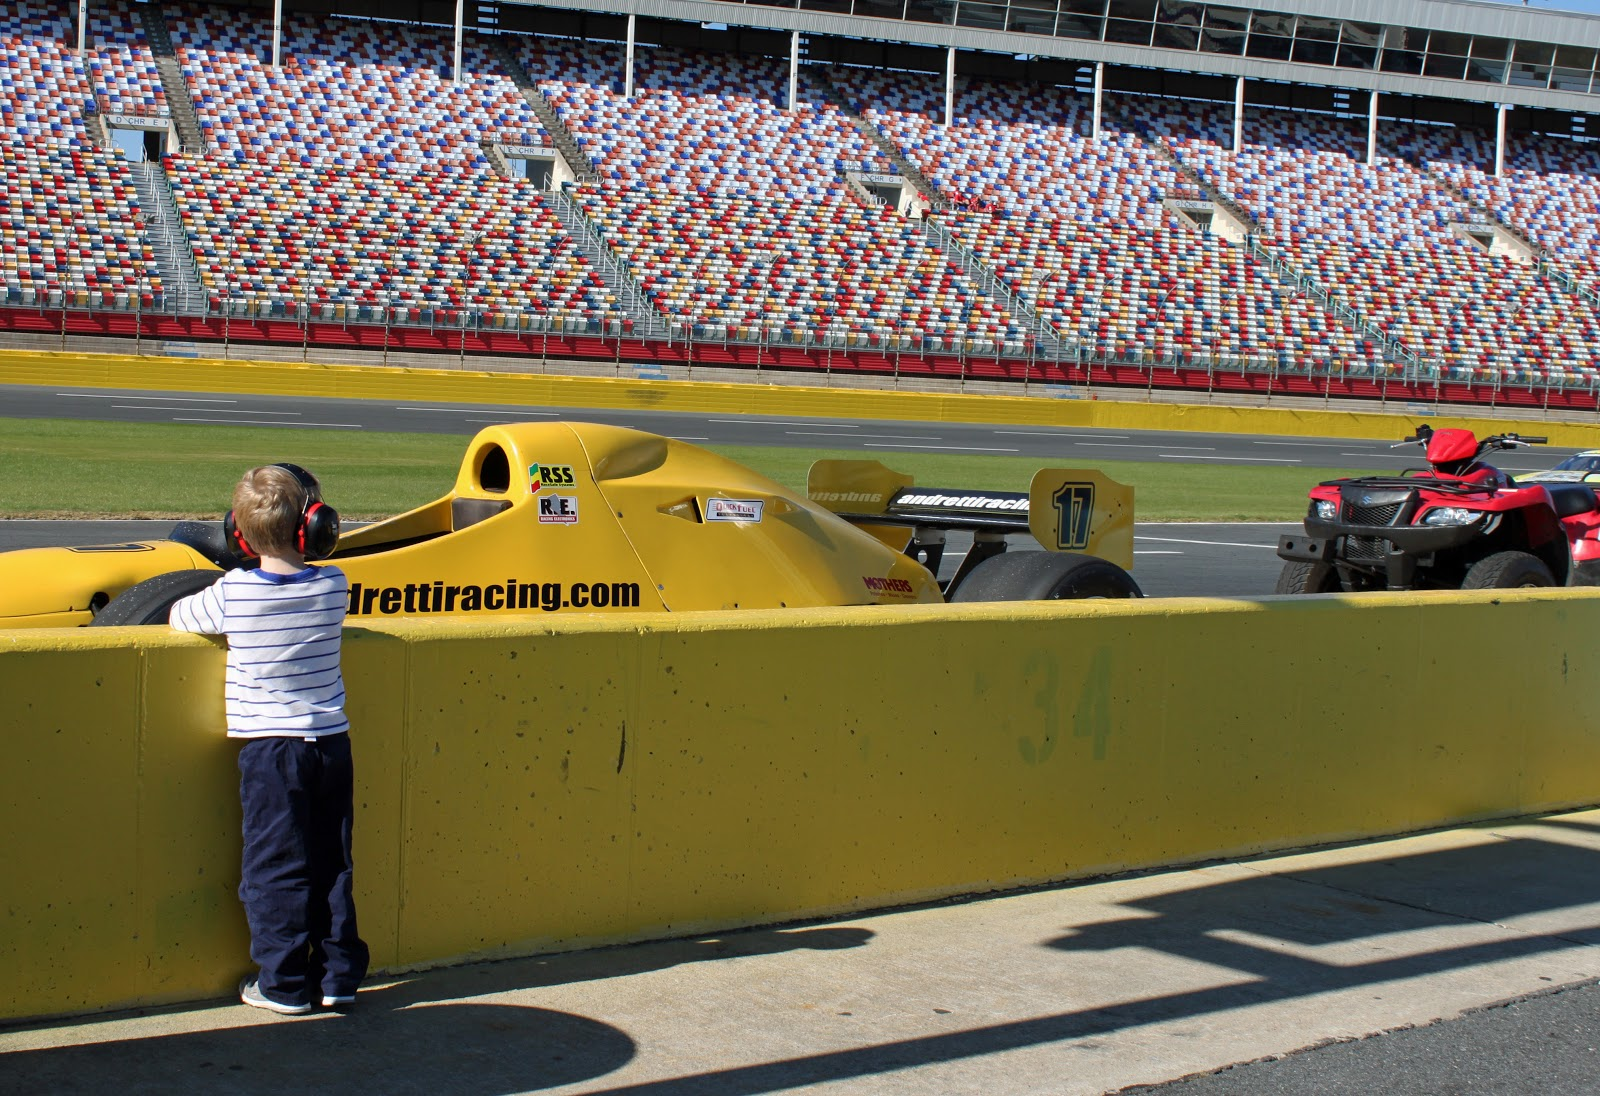 groupon andretti racing experience